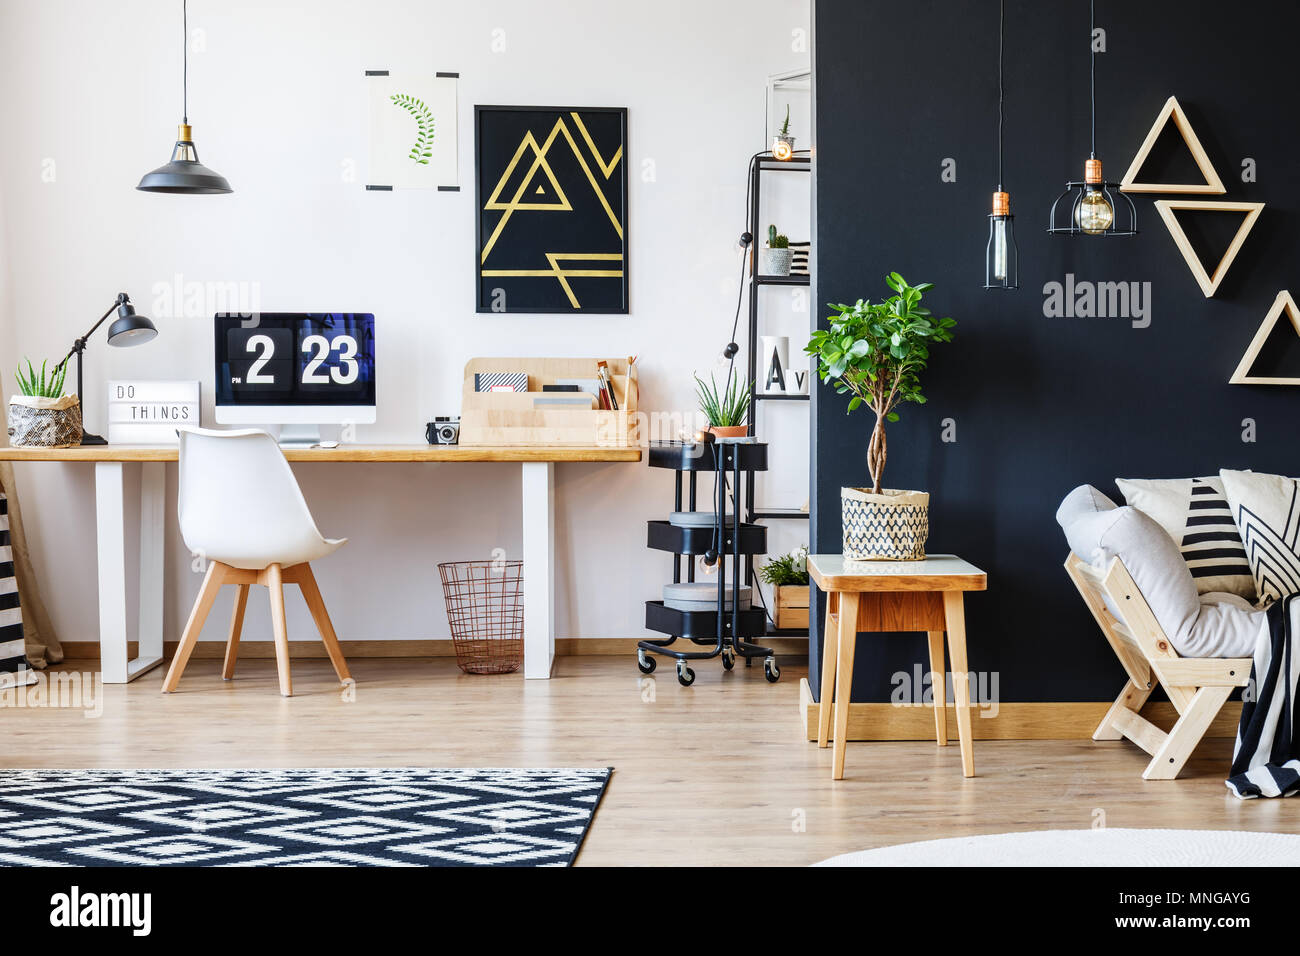 Black Accent Walls Accent Wall Stock Photos Accent Wall Stock Images Alamy